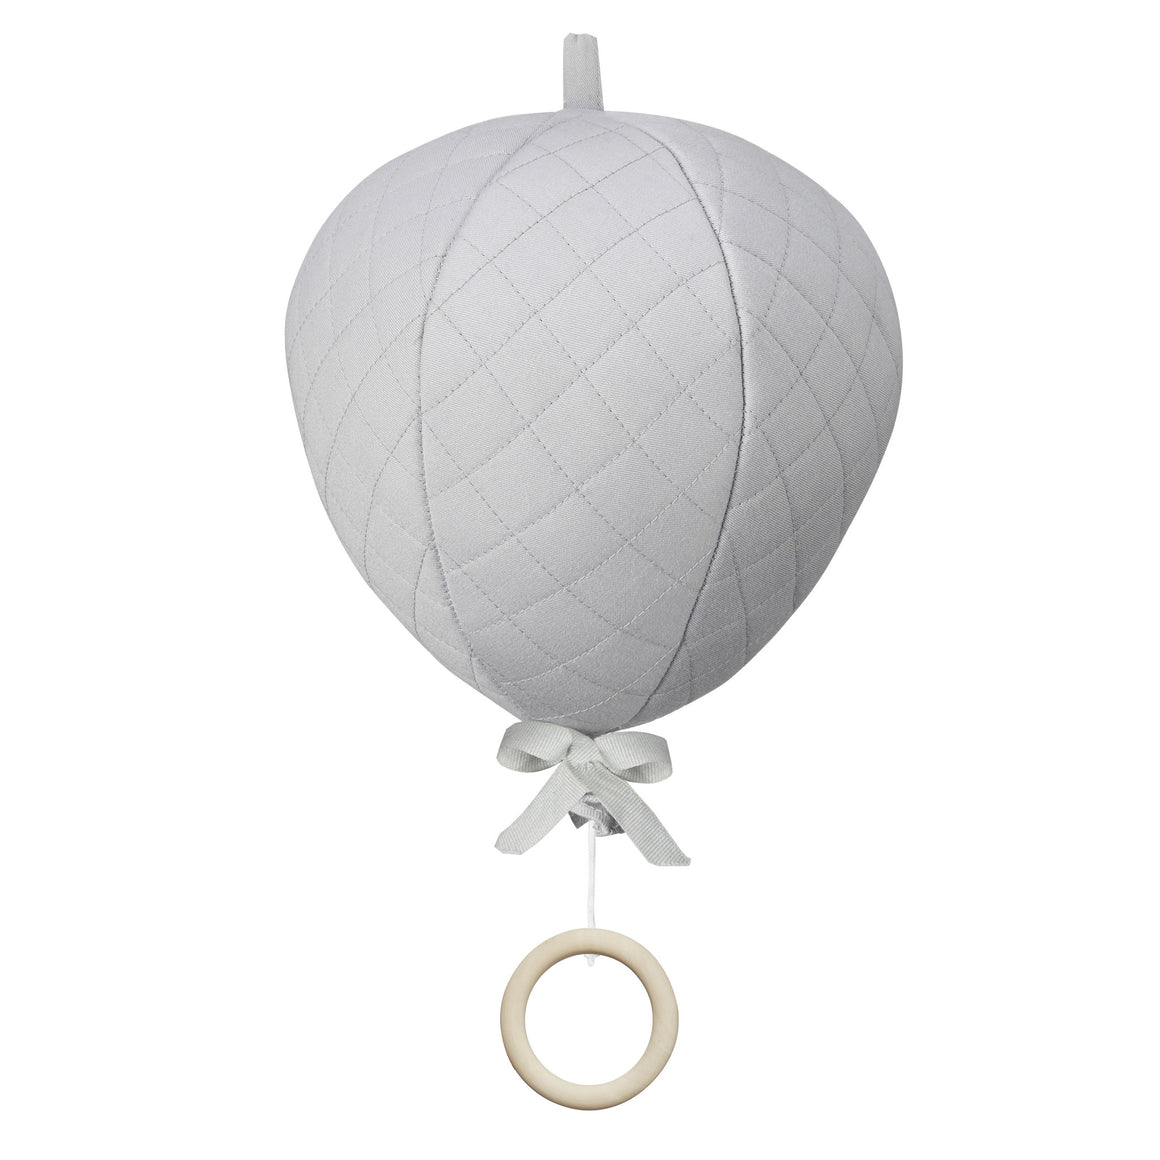 CAM CAM - BALLOON MUSIC MOBILE - GREY - Ivy Cabin